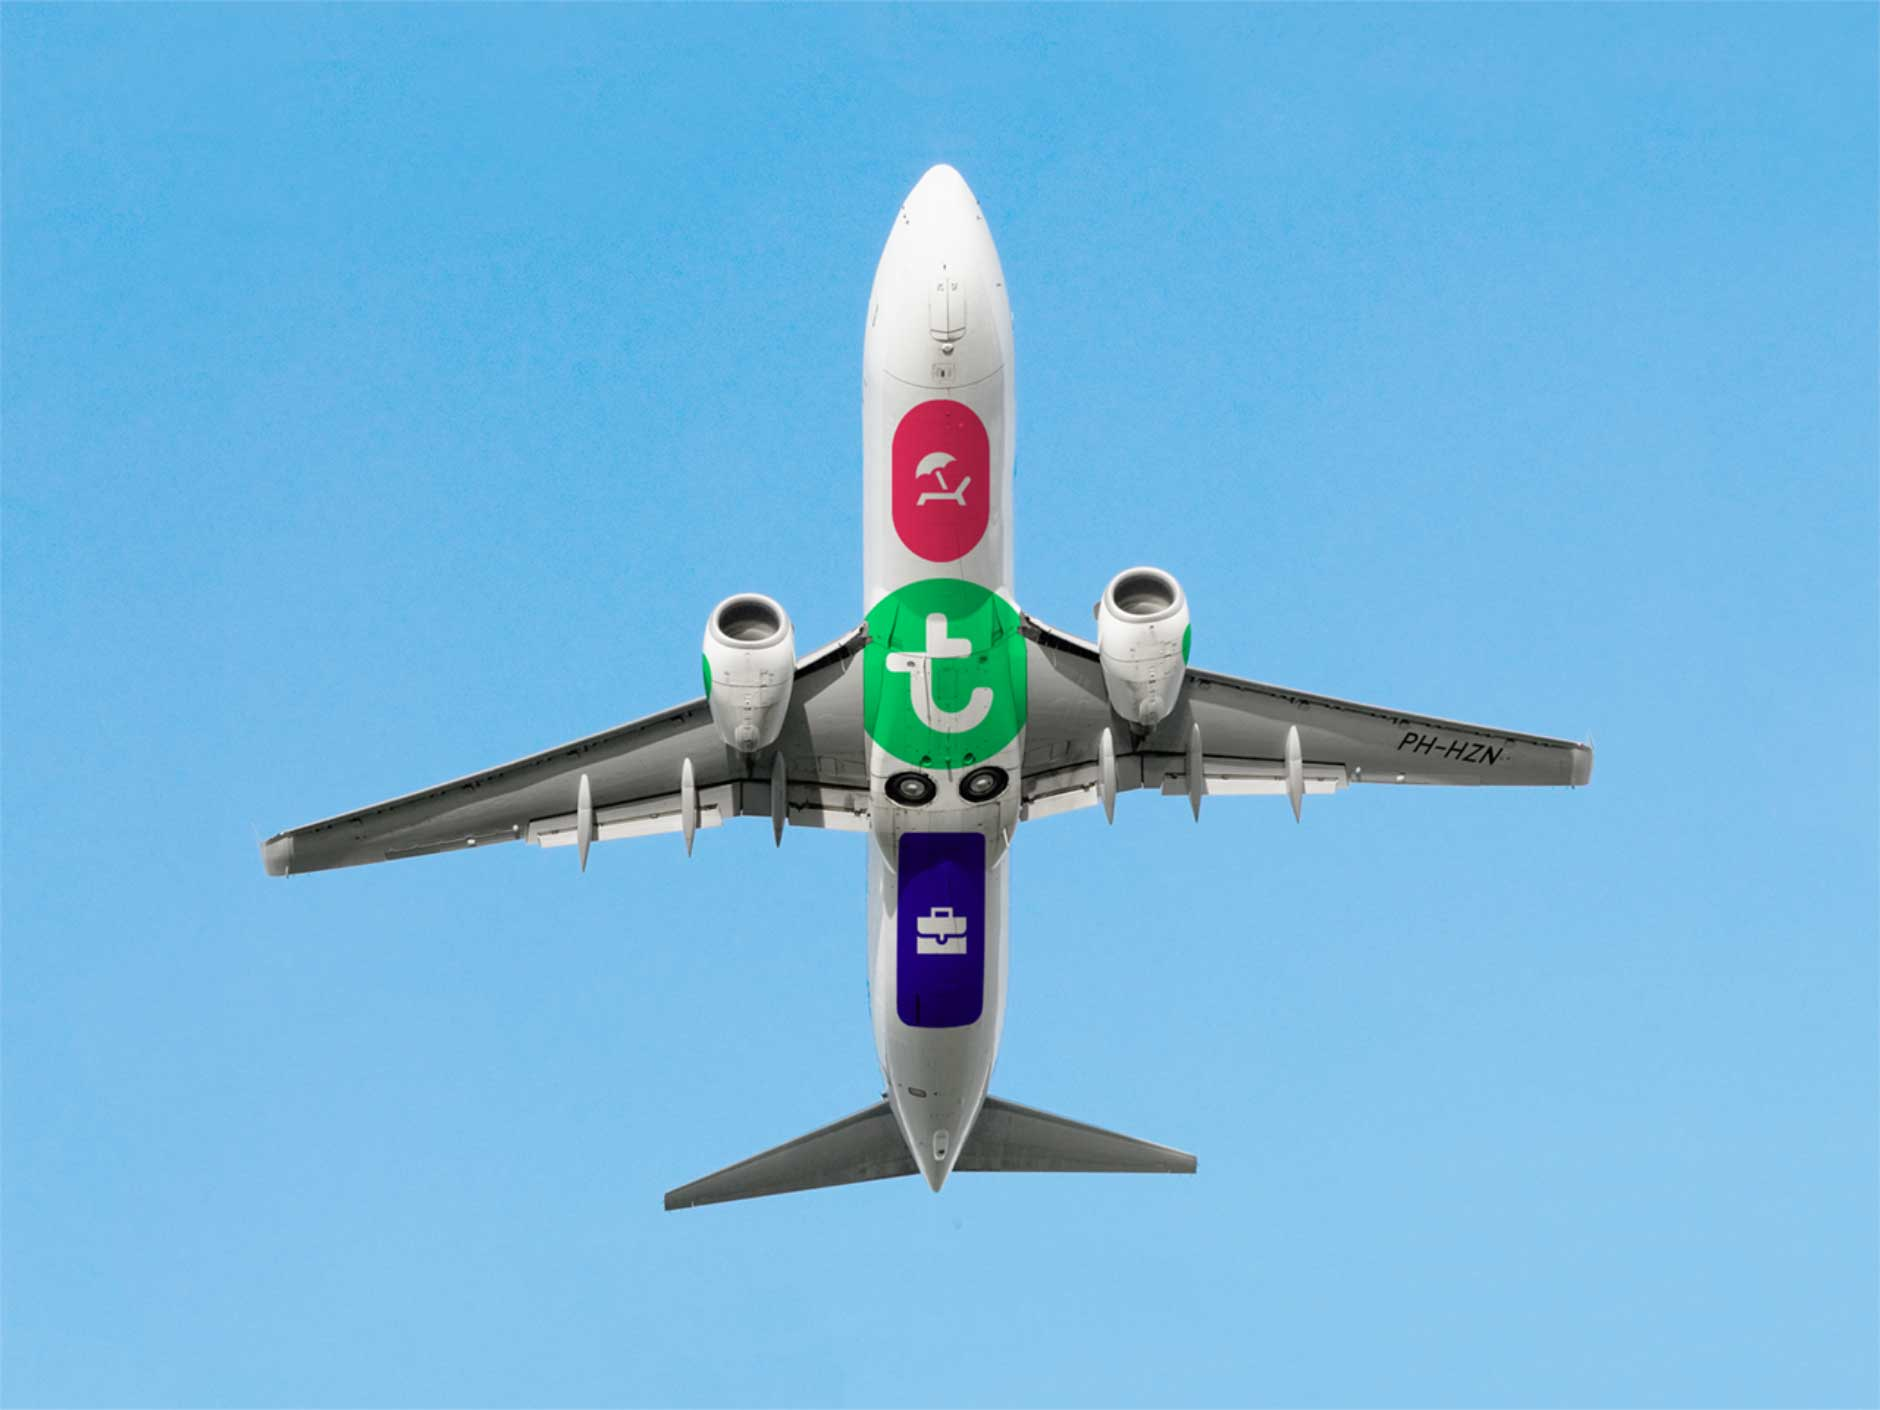 Icons by #dutchicon on the bottom of a Transavia airplane.